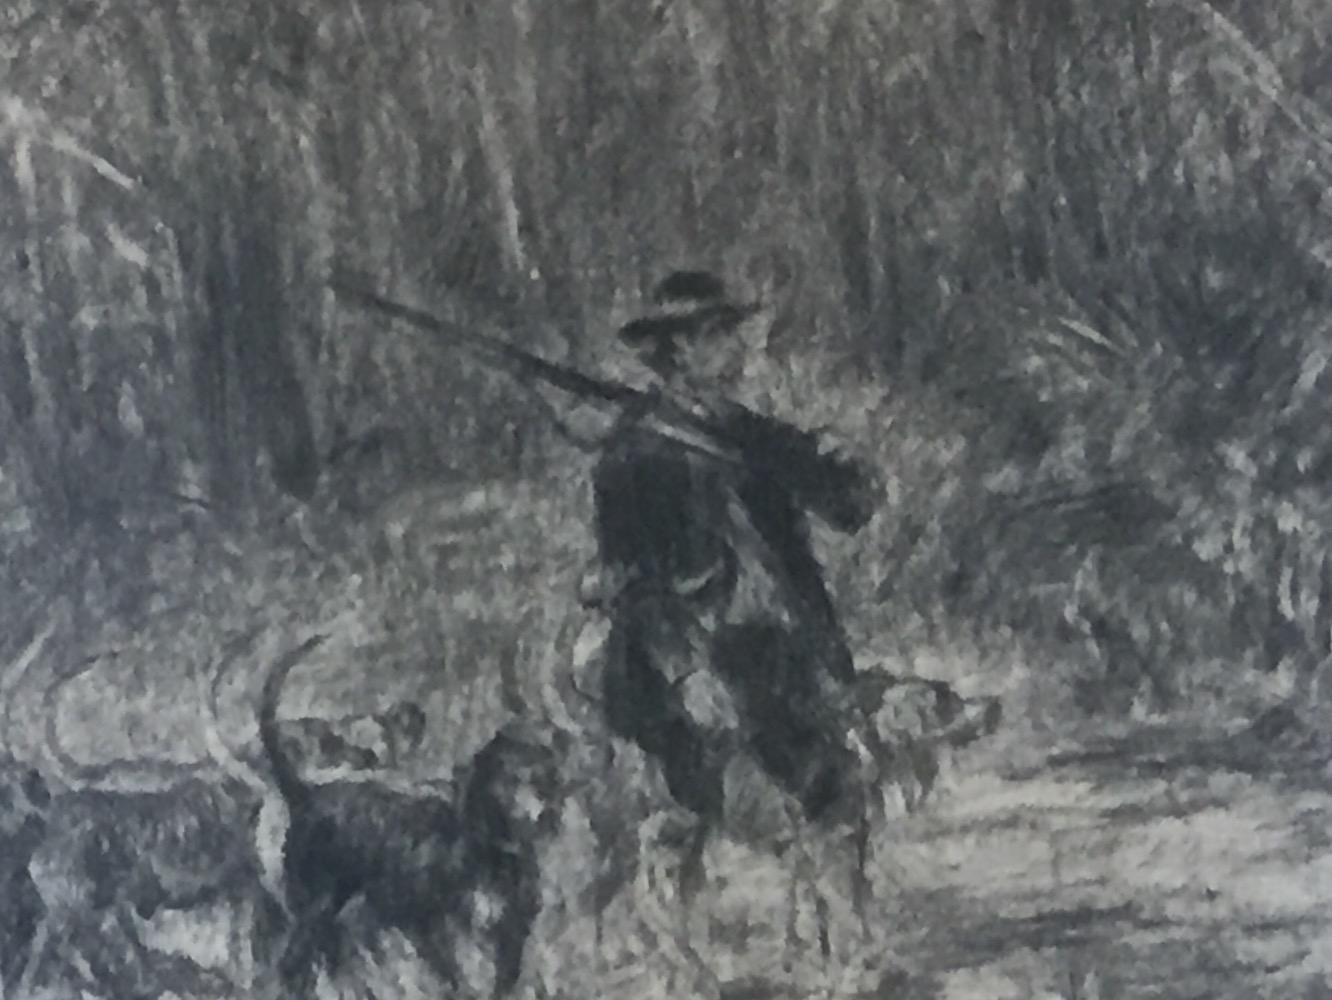 The hunter and his hounds